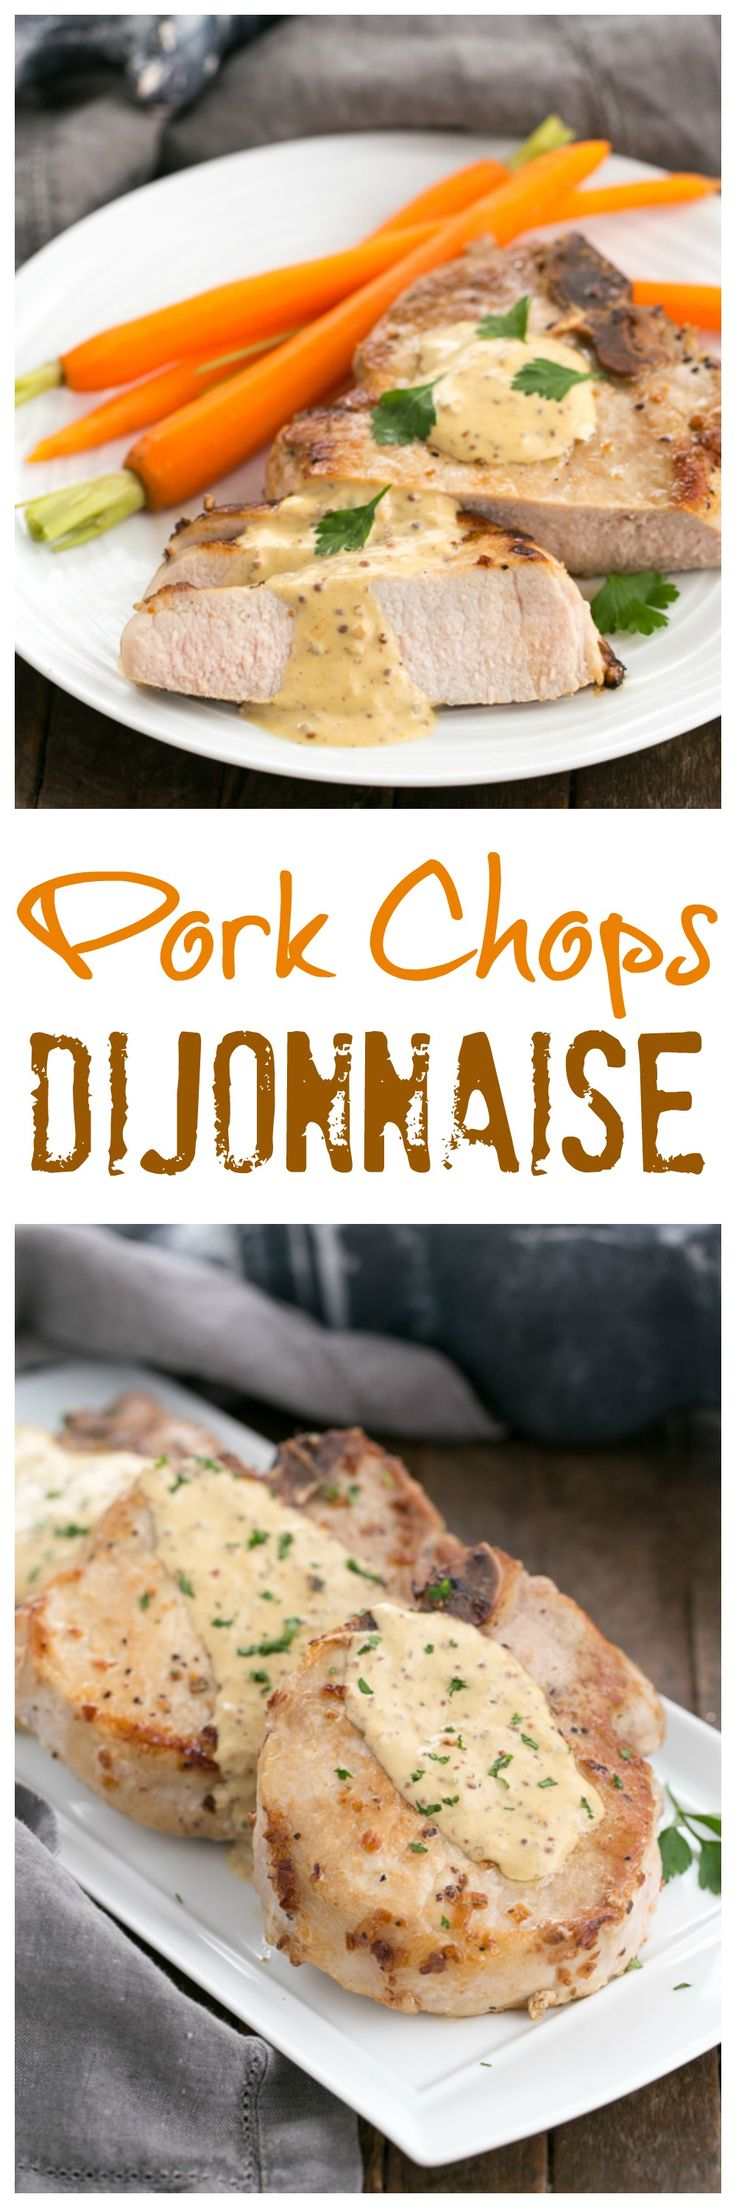 Pork Chops Dijonnaise | Incredibly delicious pan seared chops with a creamy mustard sauce @lizzydo